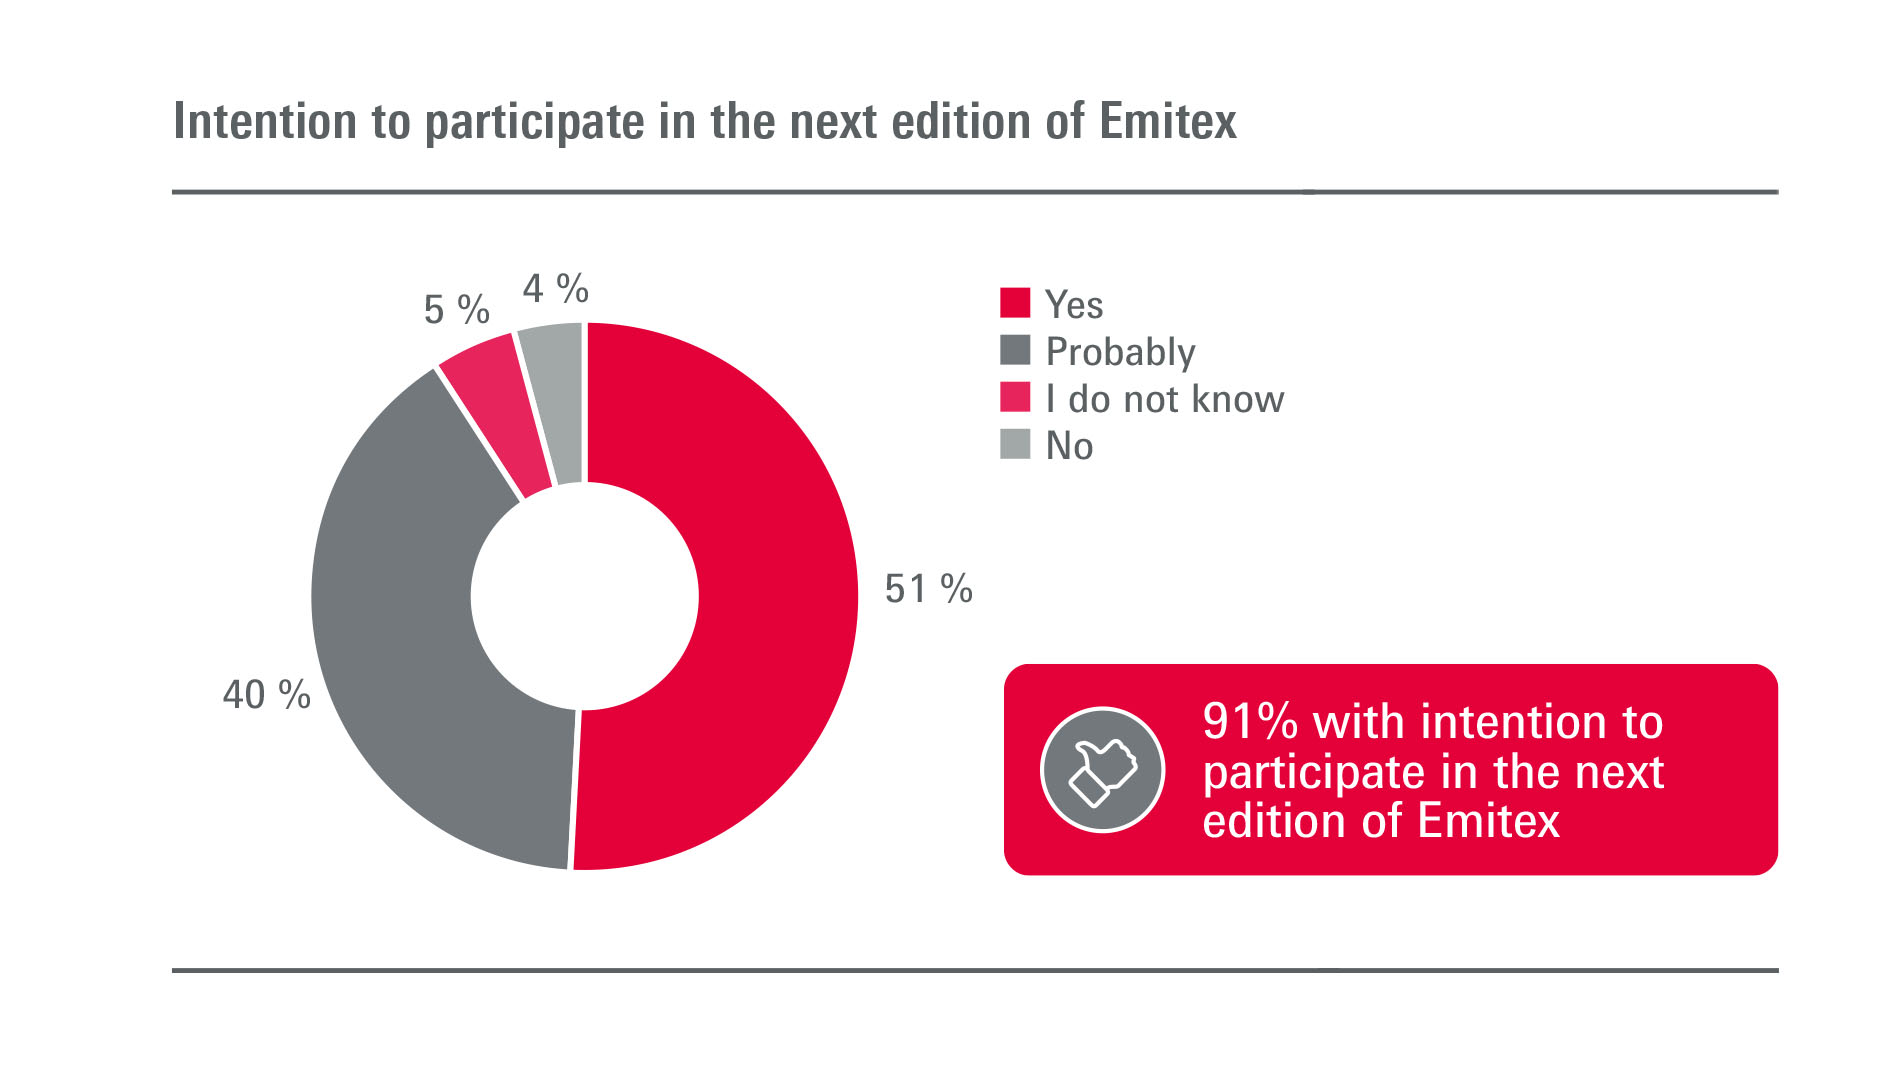 Emitex: Exhibitors - Intention to participate in next edition